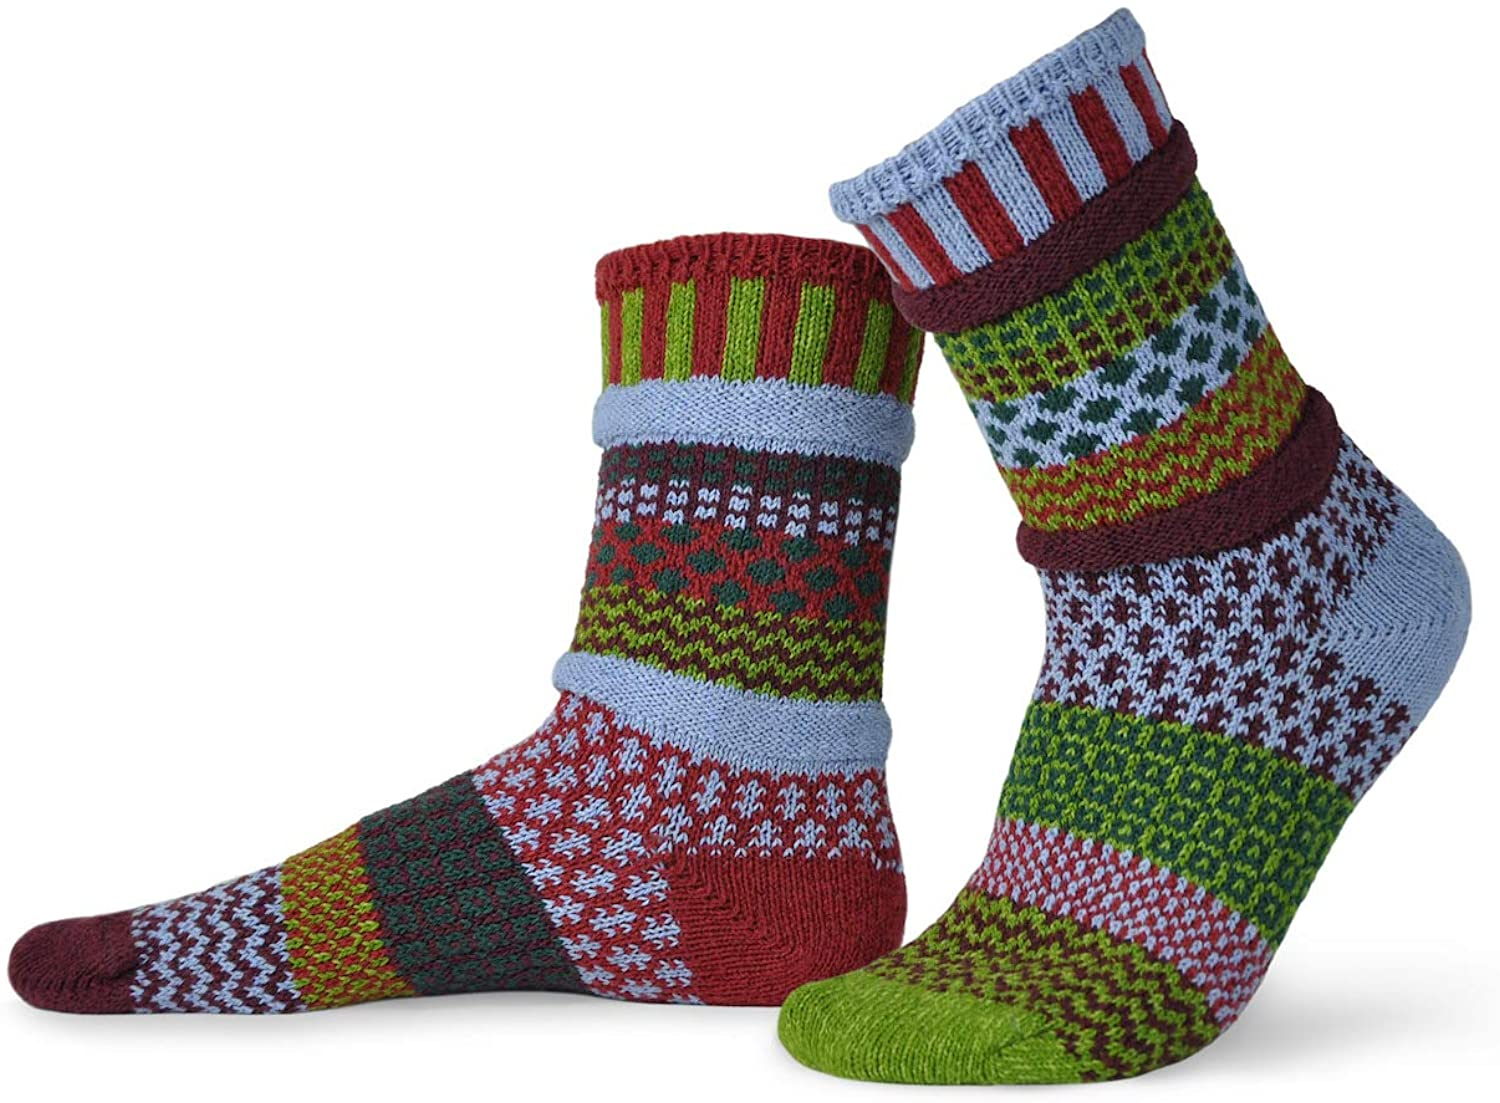 Solmate Socks - Mismatched Crew Socks; Made in USA; Elderberry Small